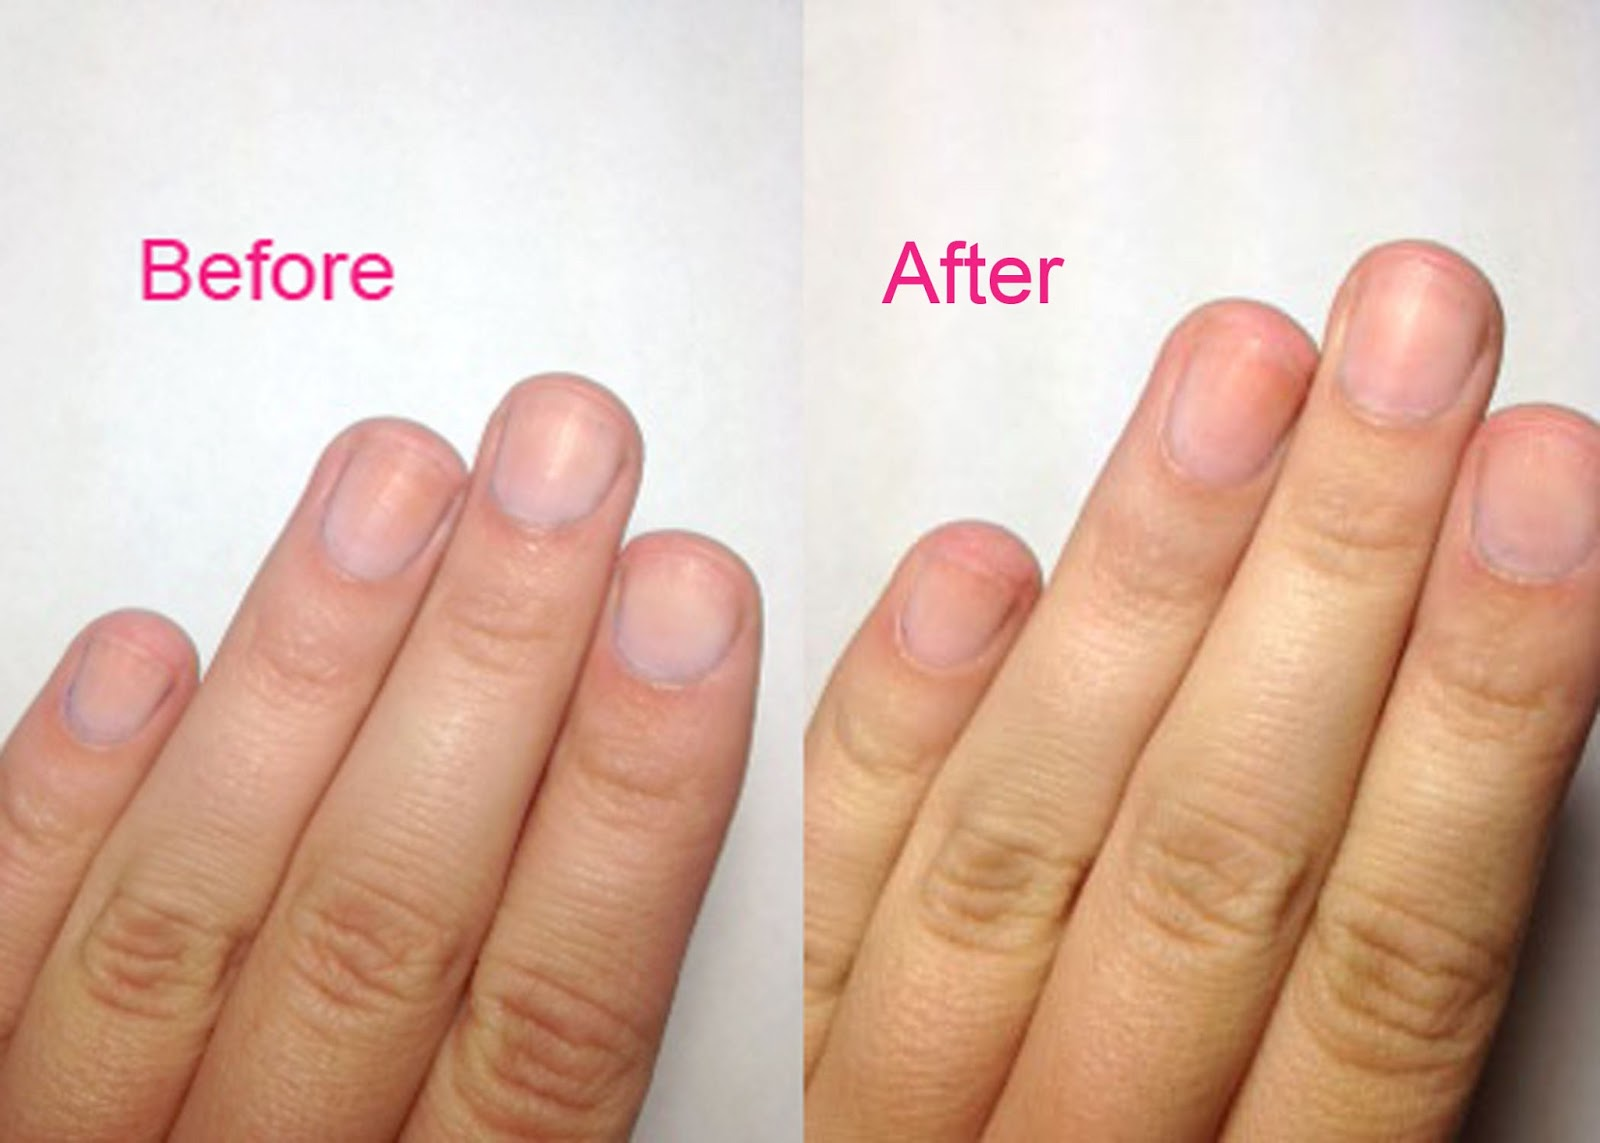 How to Make Your Fingernails Look Good